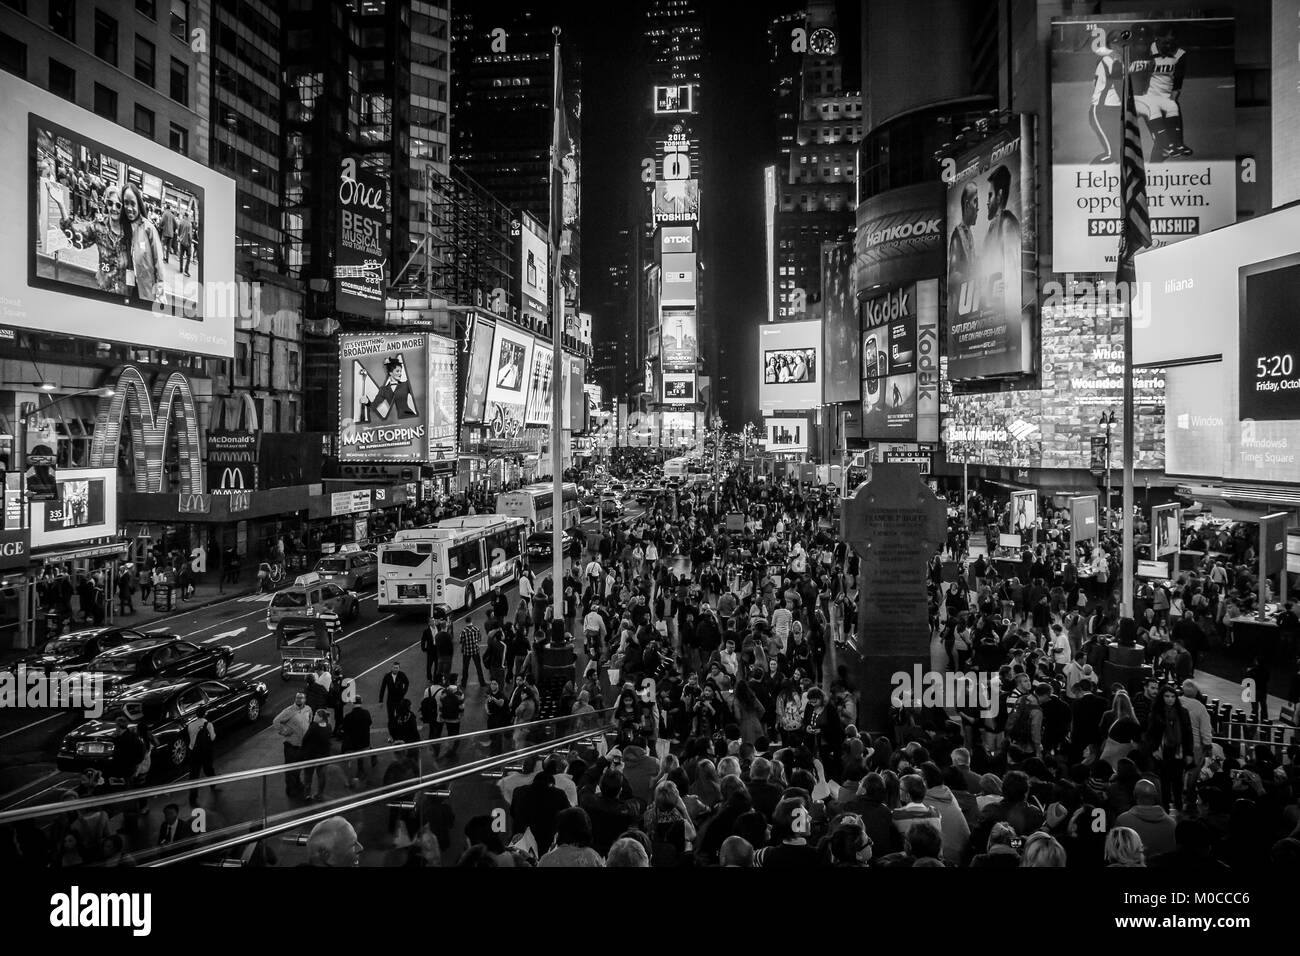 An evening shot of Time Square in New York City. Stock Photo